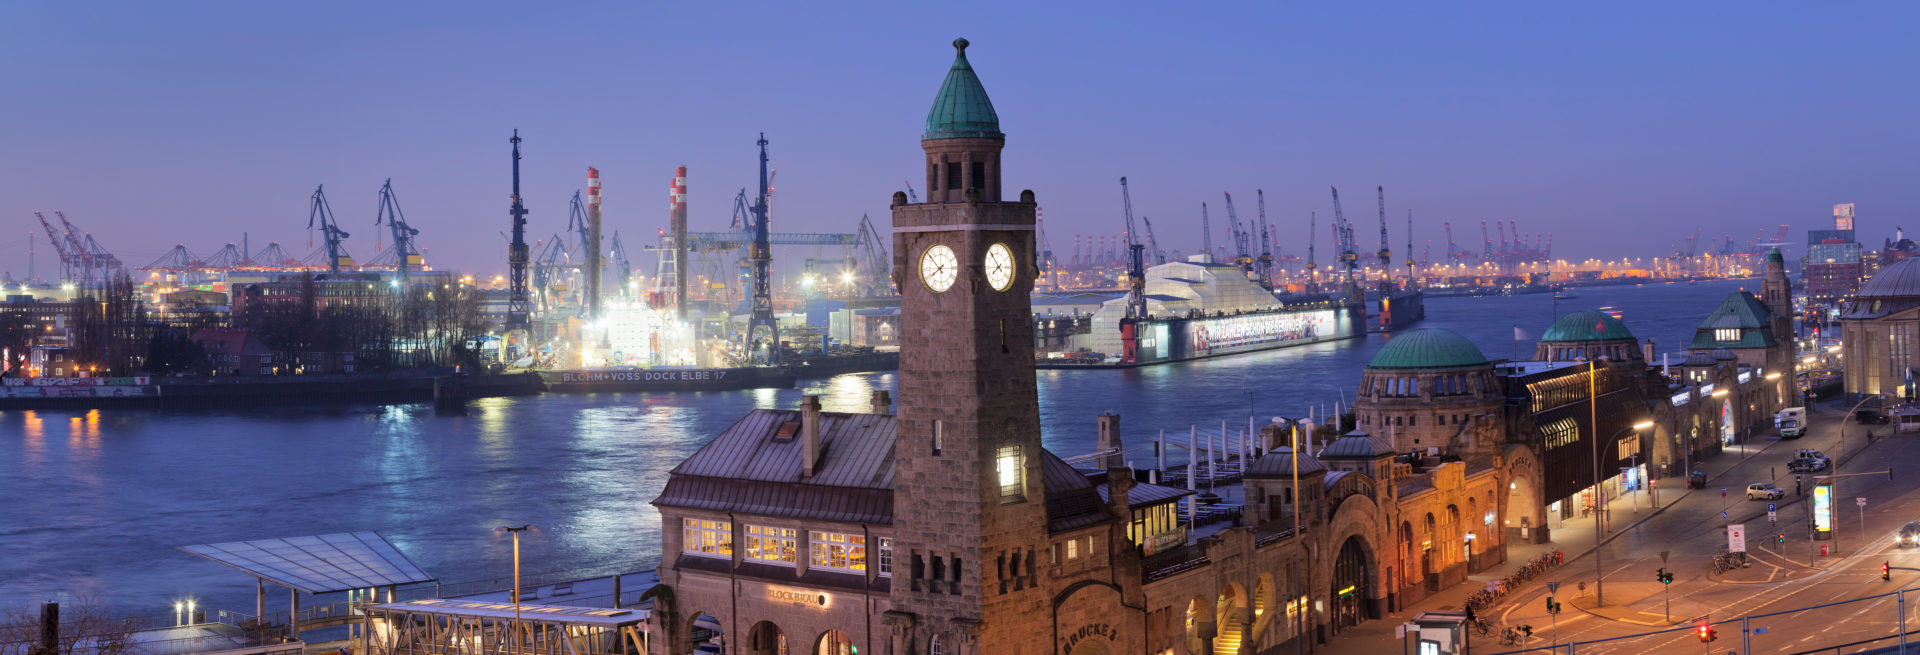 Pegelturm at the St. Pauli Piers with view to the harbour, Hamburg, Germany